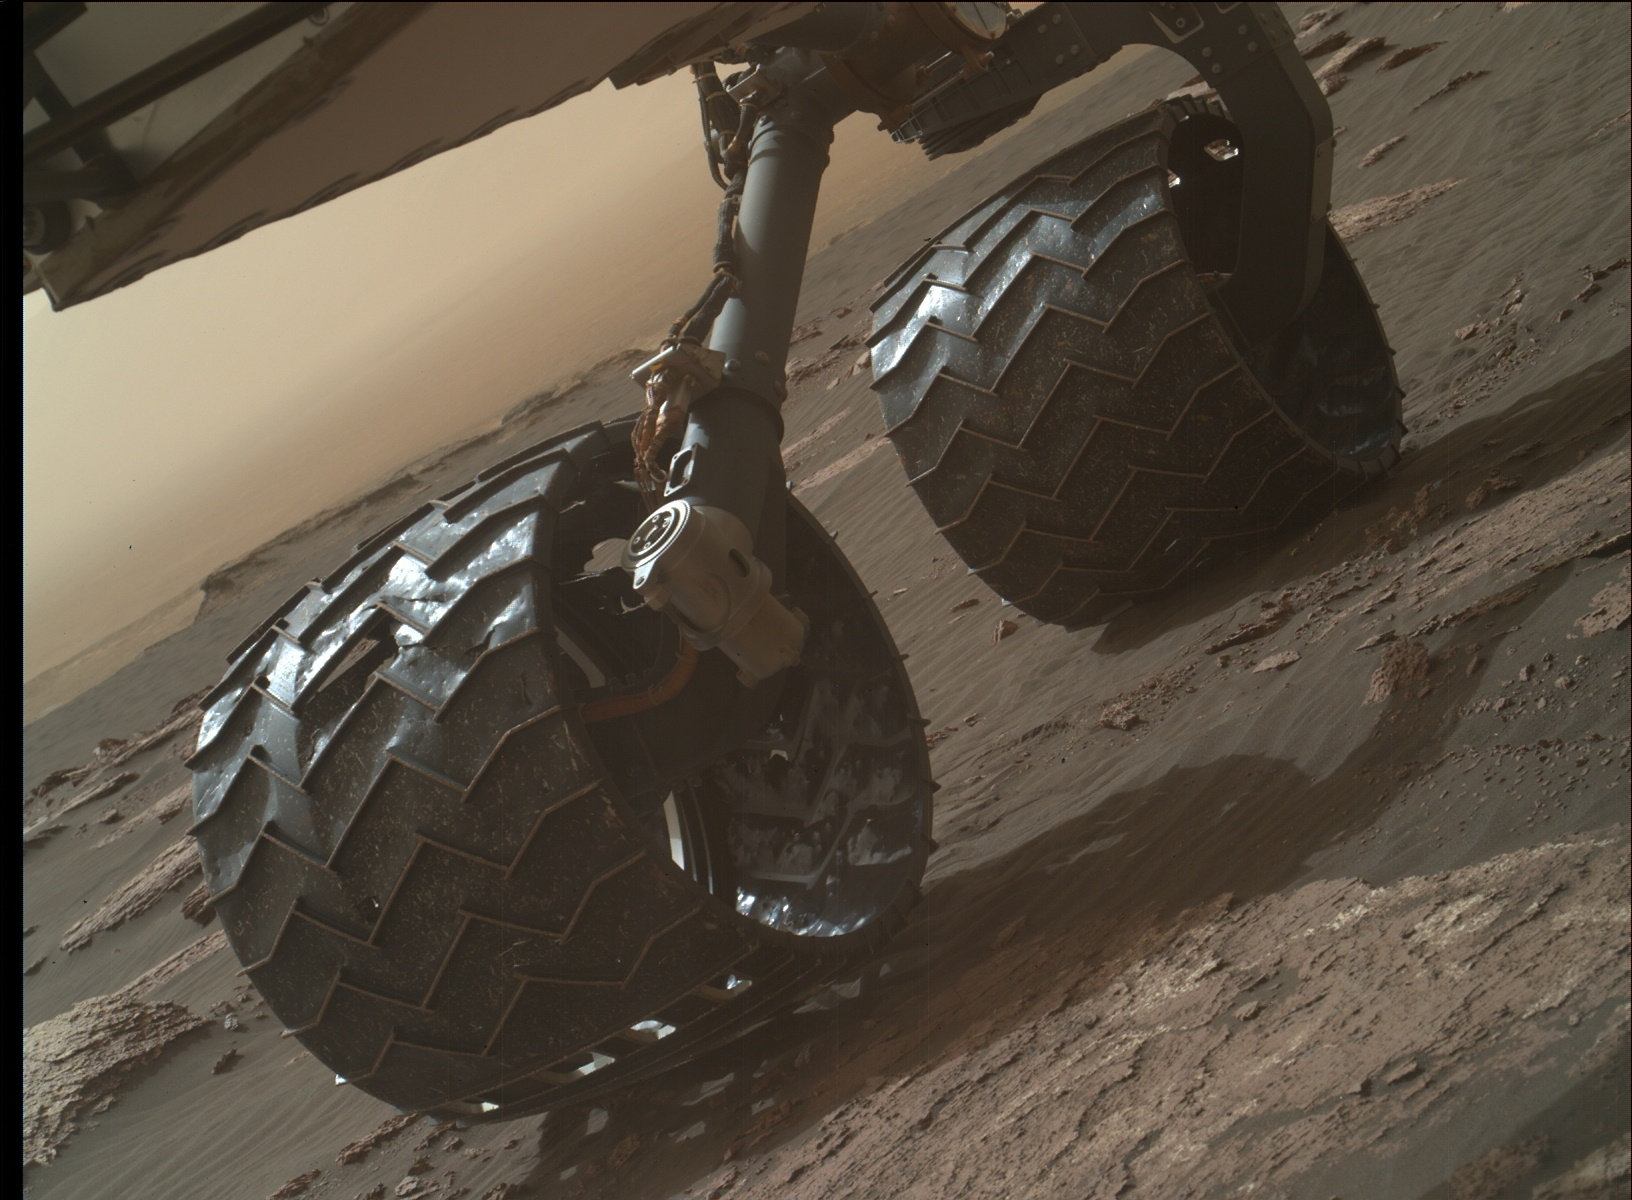 Nasa's Mars rover Curiosity acquired this image using its Mars Hand Lens Imager (MAHLI) on Sol 1641